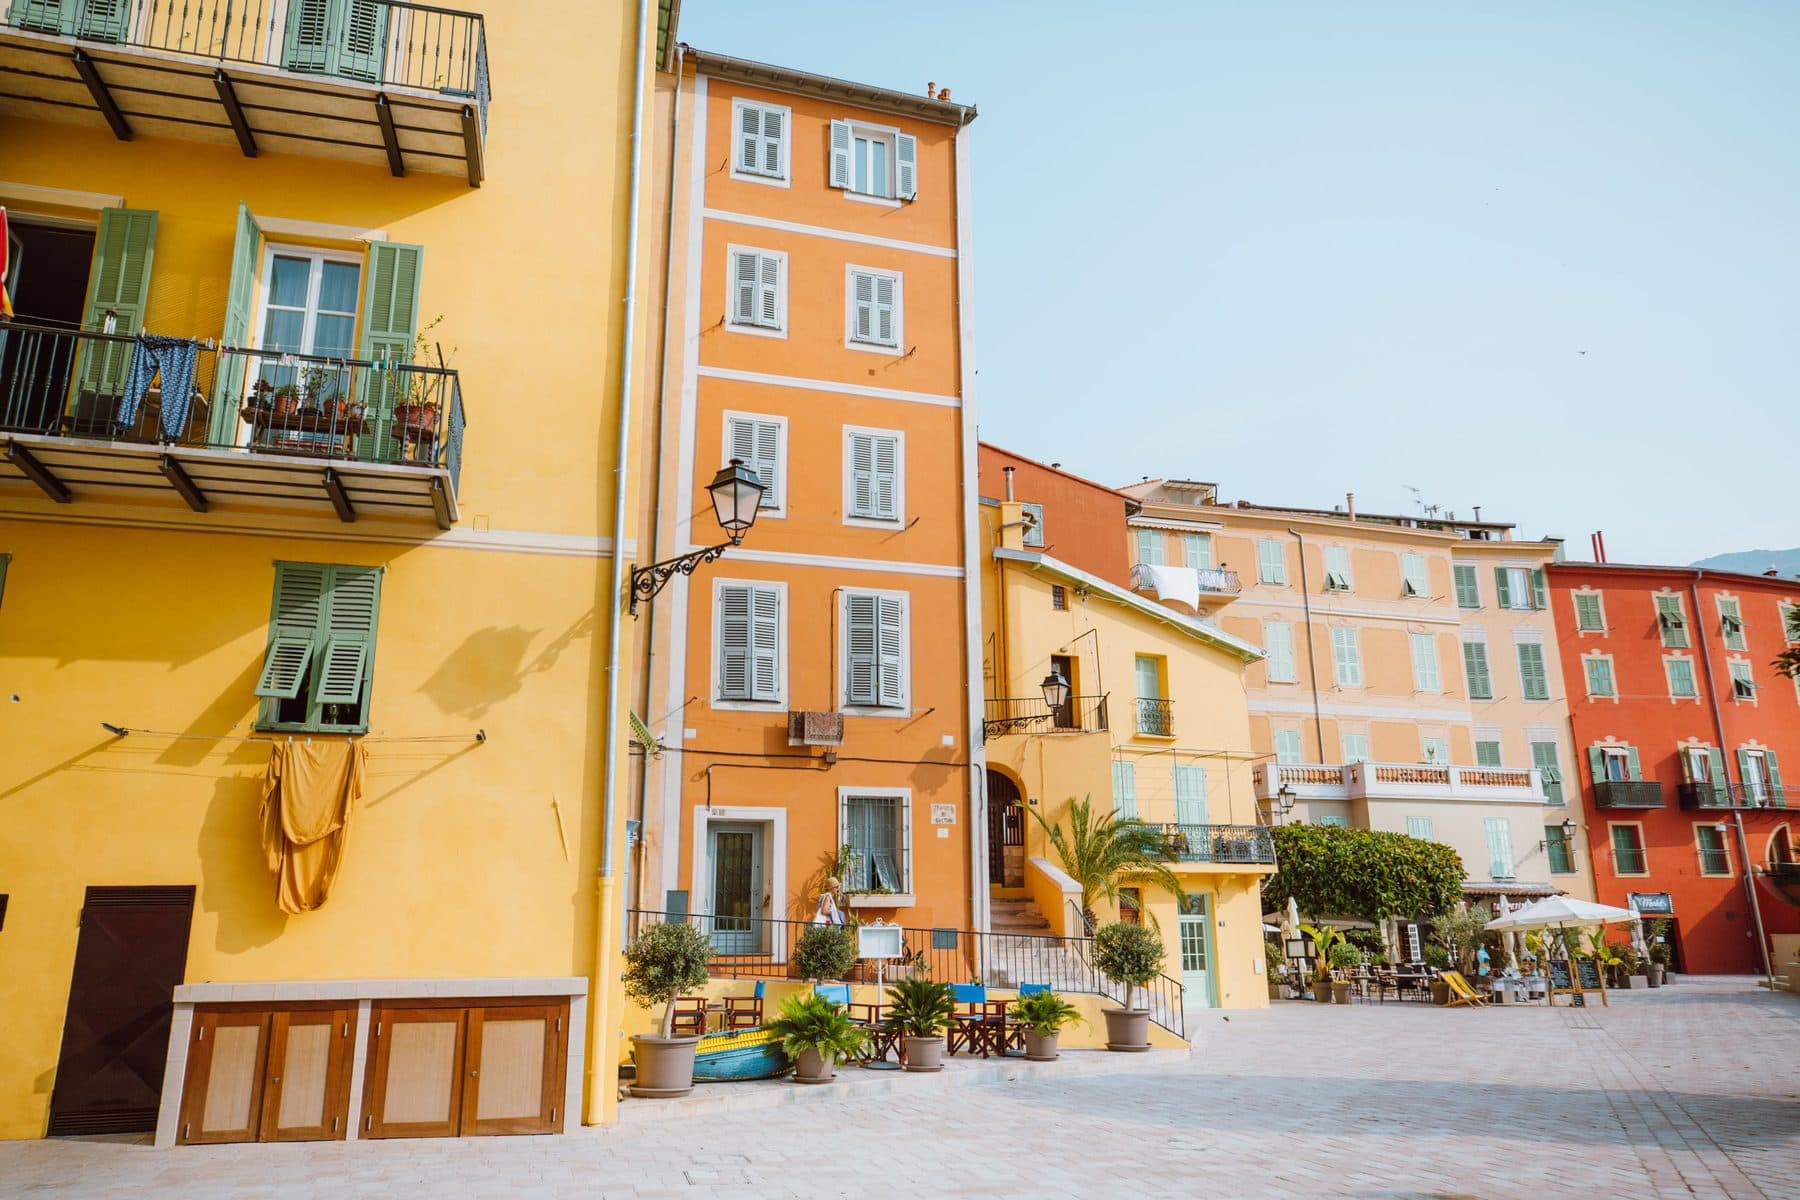 Colorful houses in Menton, France